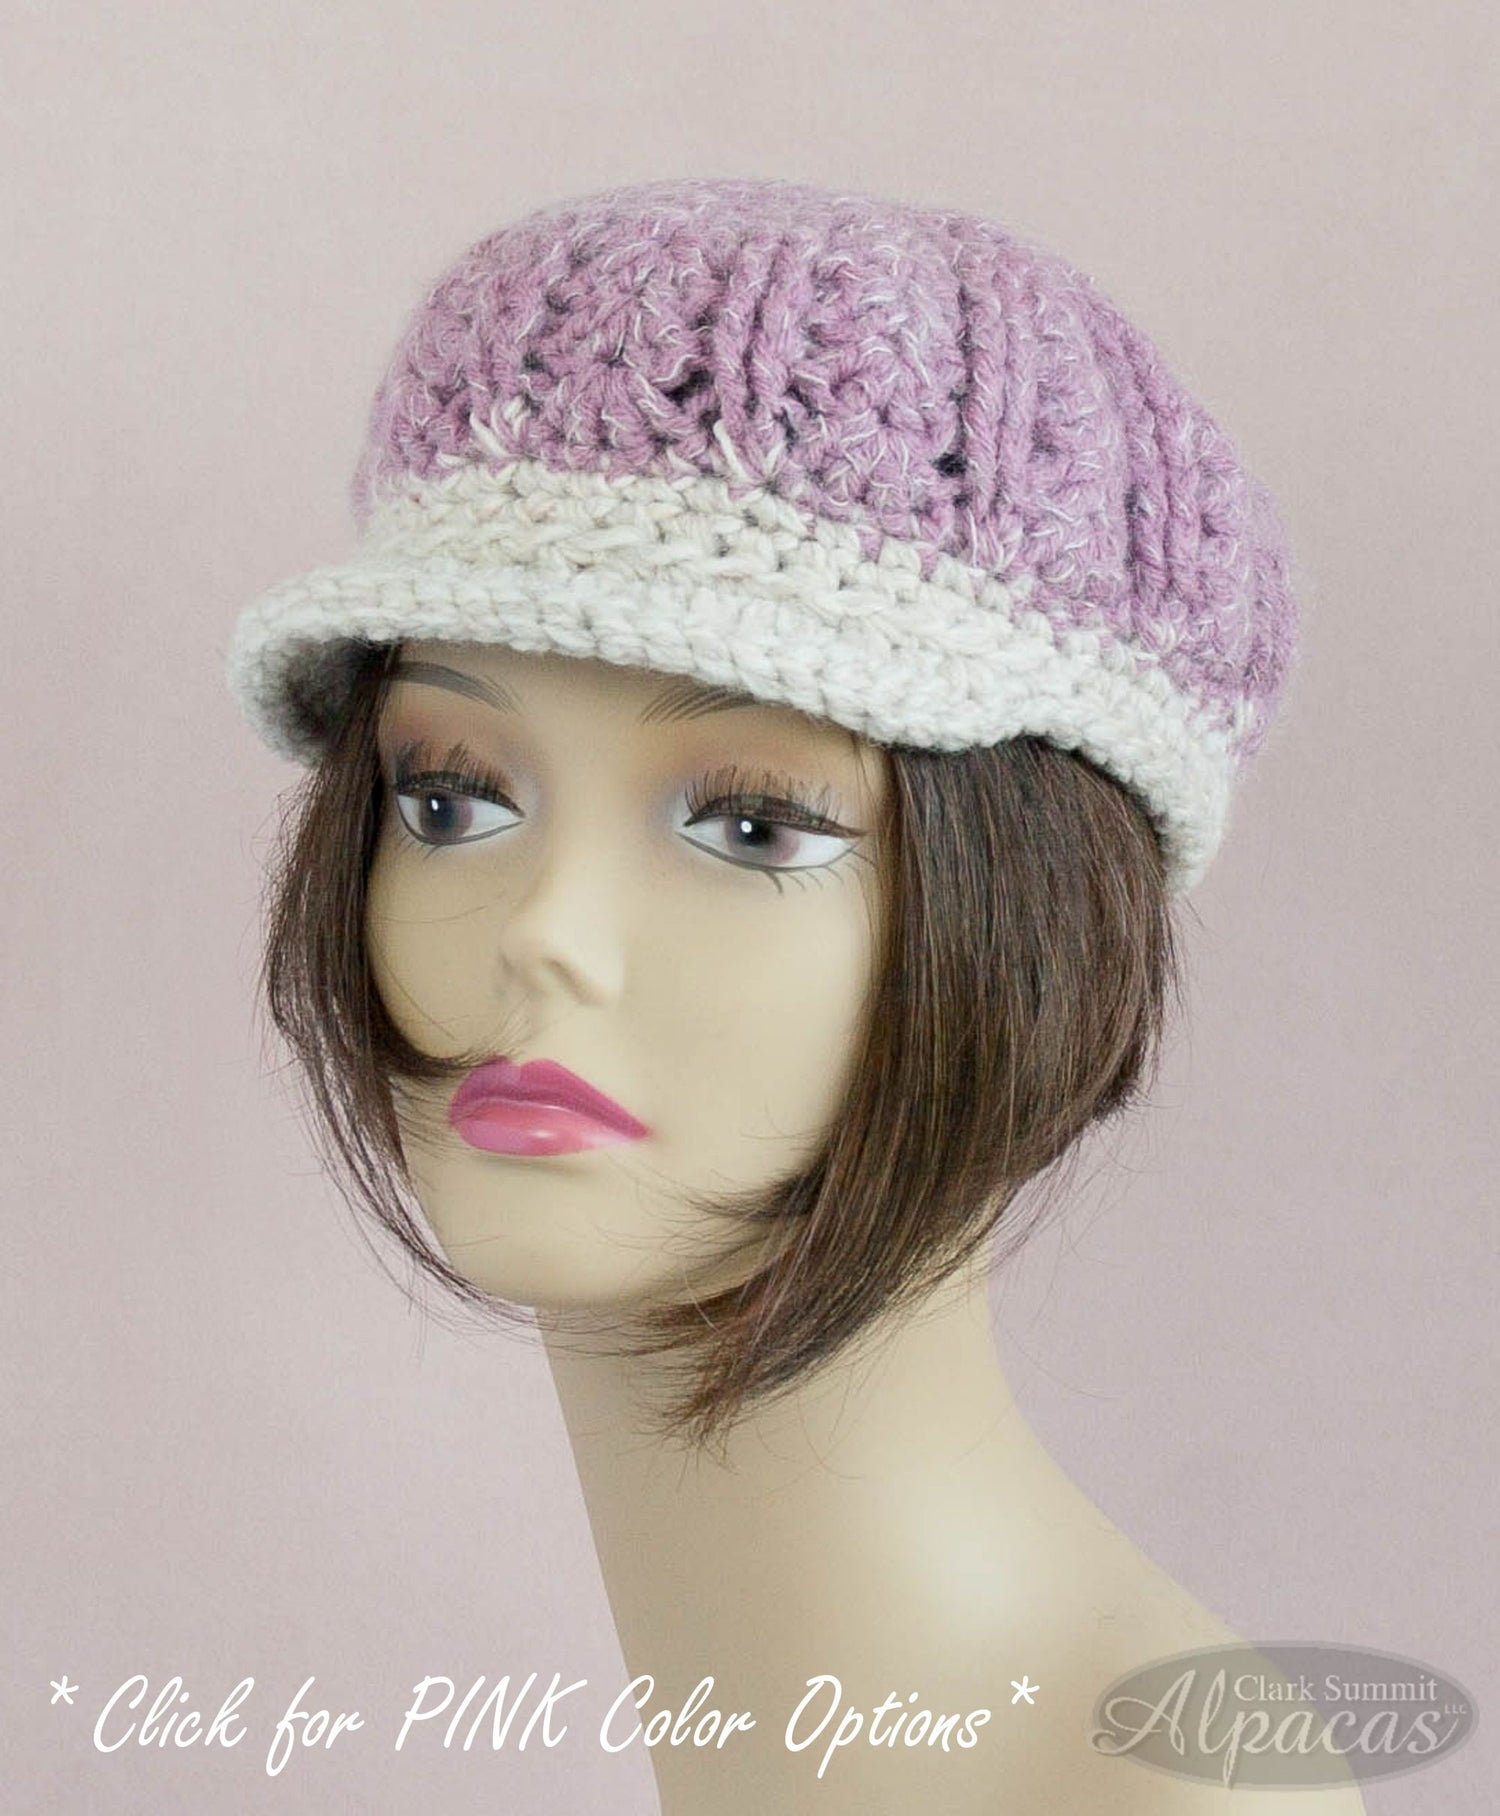 Alpaca Visor Hat Pinks - Year Round Comfort - Llama Lovers Wool Blend - Hand Crocheted Semi Felted